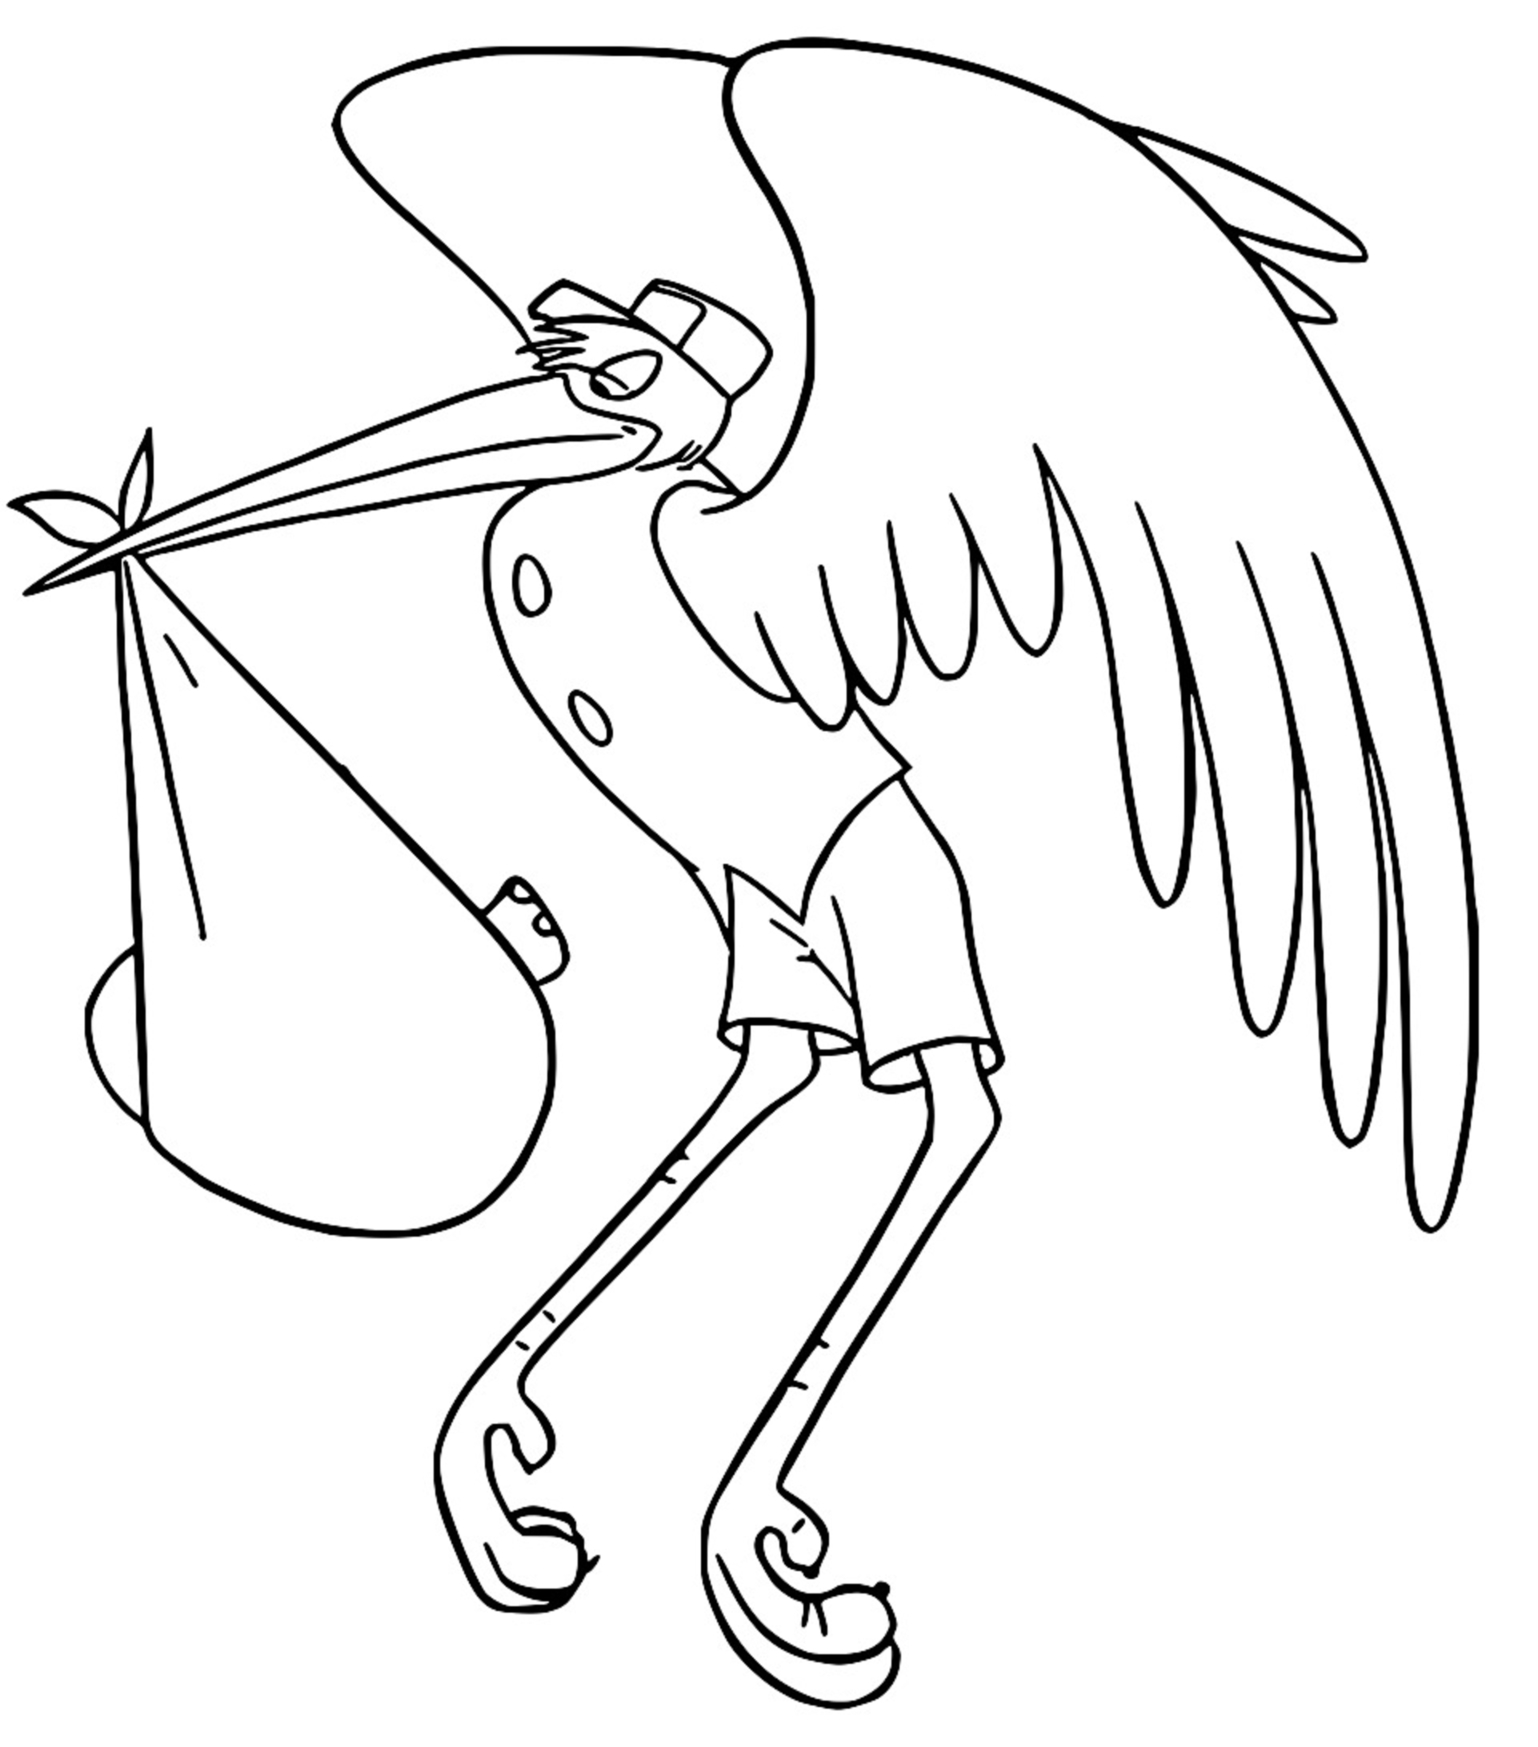 Dumbo Stork Coloring Pages